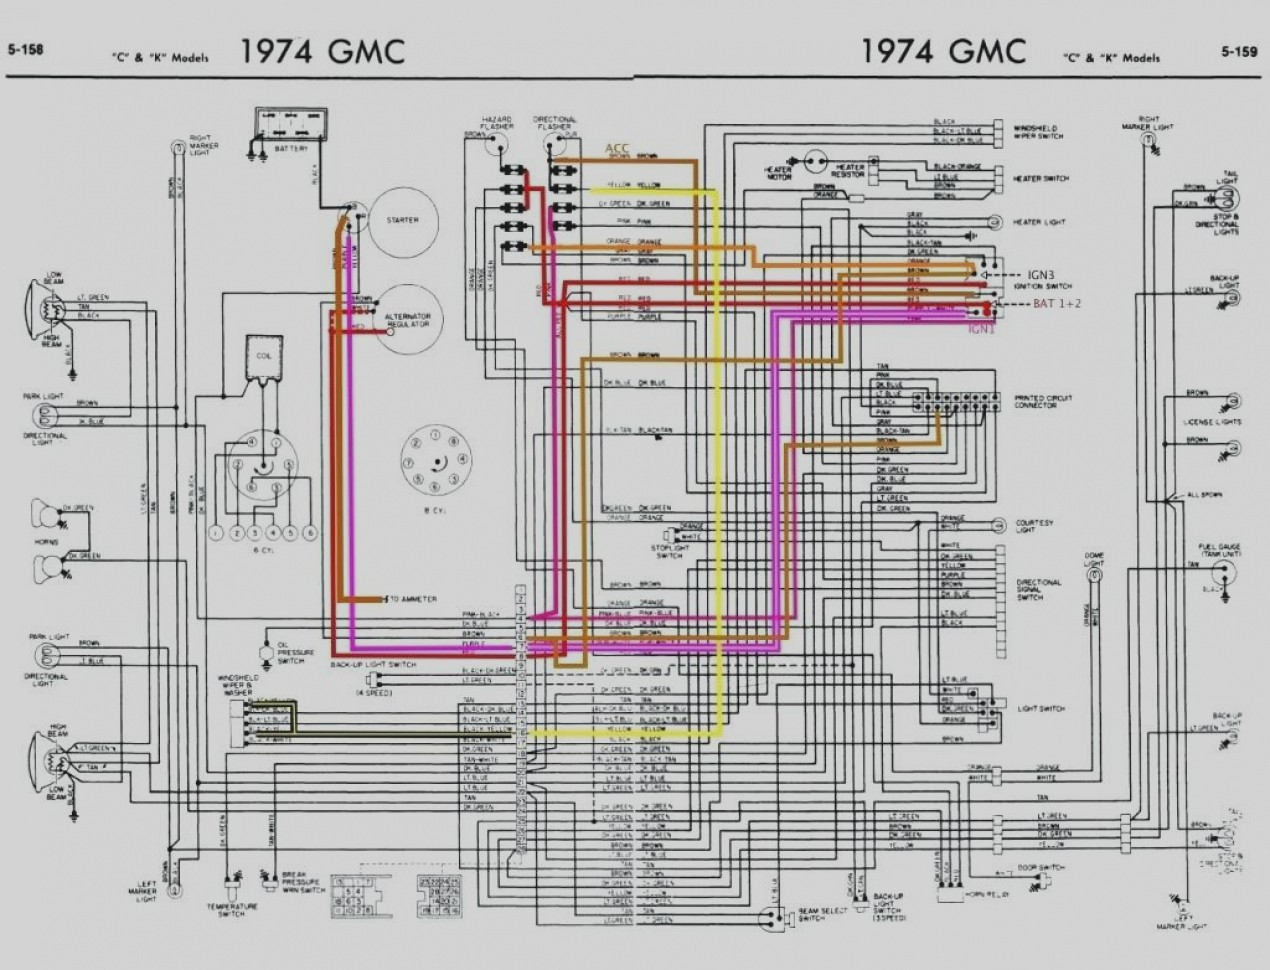 1967 Chevy Wiring Harness Diagram - Wiring Diagrams on l6 wiring diagram, r6 wiring diagram, k40 wiring diagram, d2 wiring diagram, a2 wiring diagram, t1 wiring diagram, l3 wiring diagram, h3 wiring diagram, c5 wiring diagram, k30 wiring diagram, e1 wiring diagram, t5 wiring diagram, k7 wiring diagram, l7 wiring diagram, k100 wiring diagram, j1 wiring diagram, h4 wiring diagram, g6 wiring diagram, a4 wiring diagram, h1 wiring diagram,